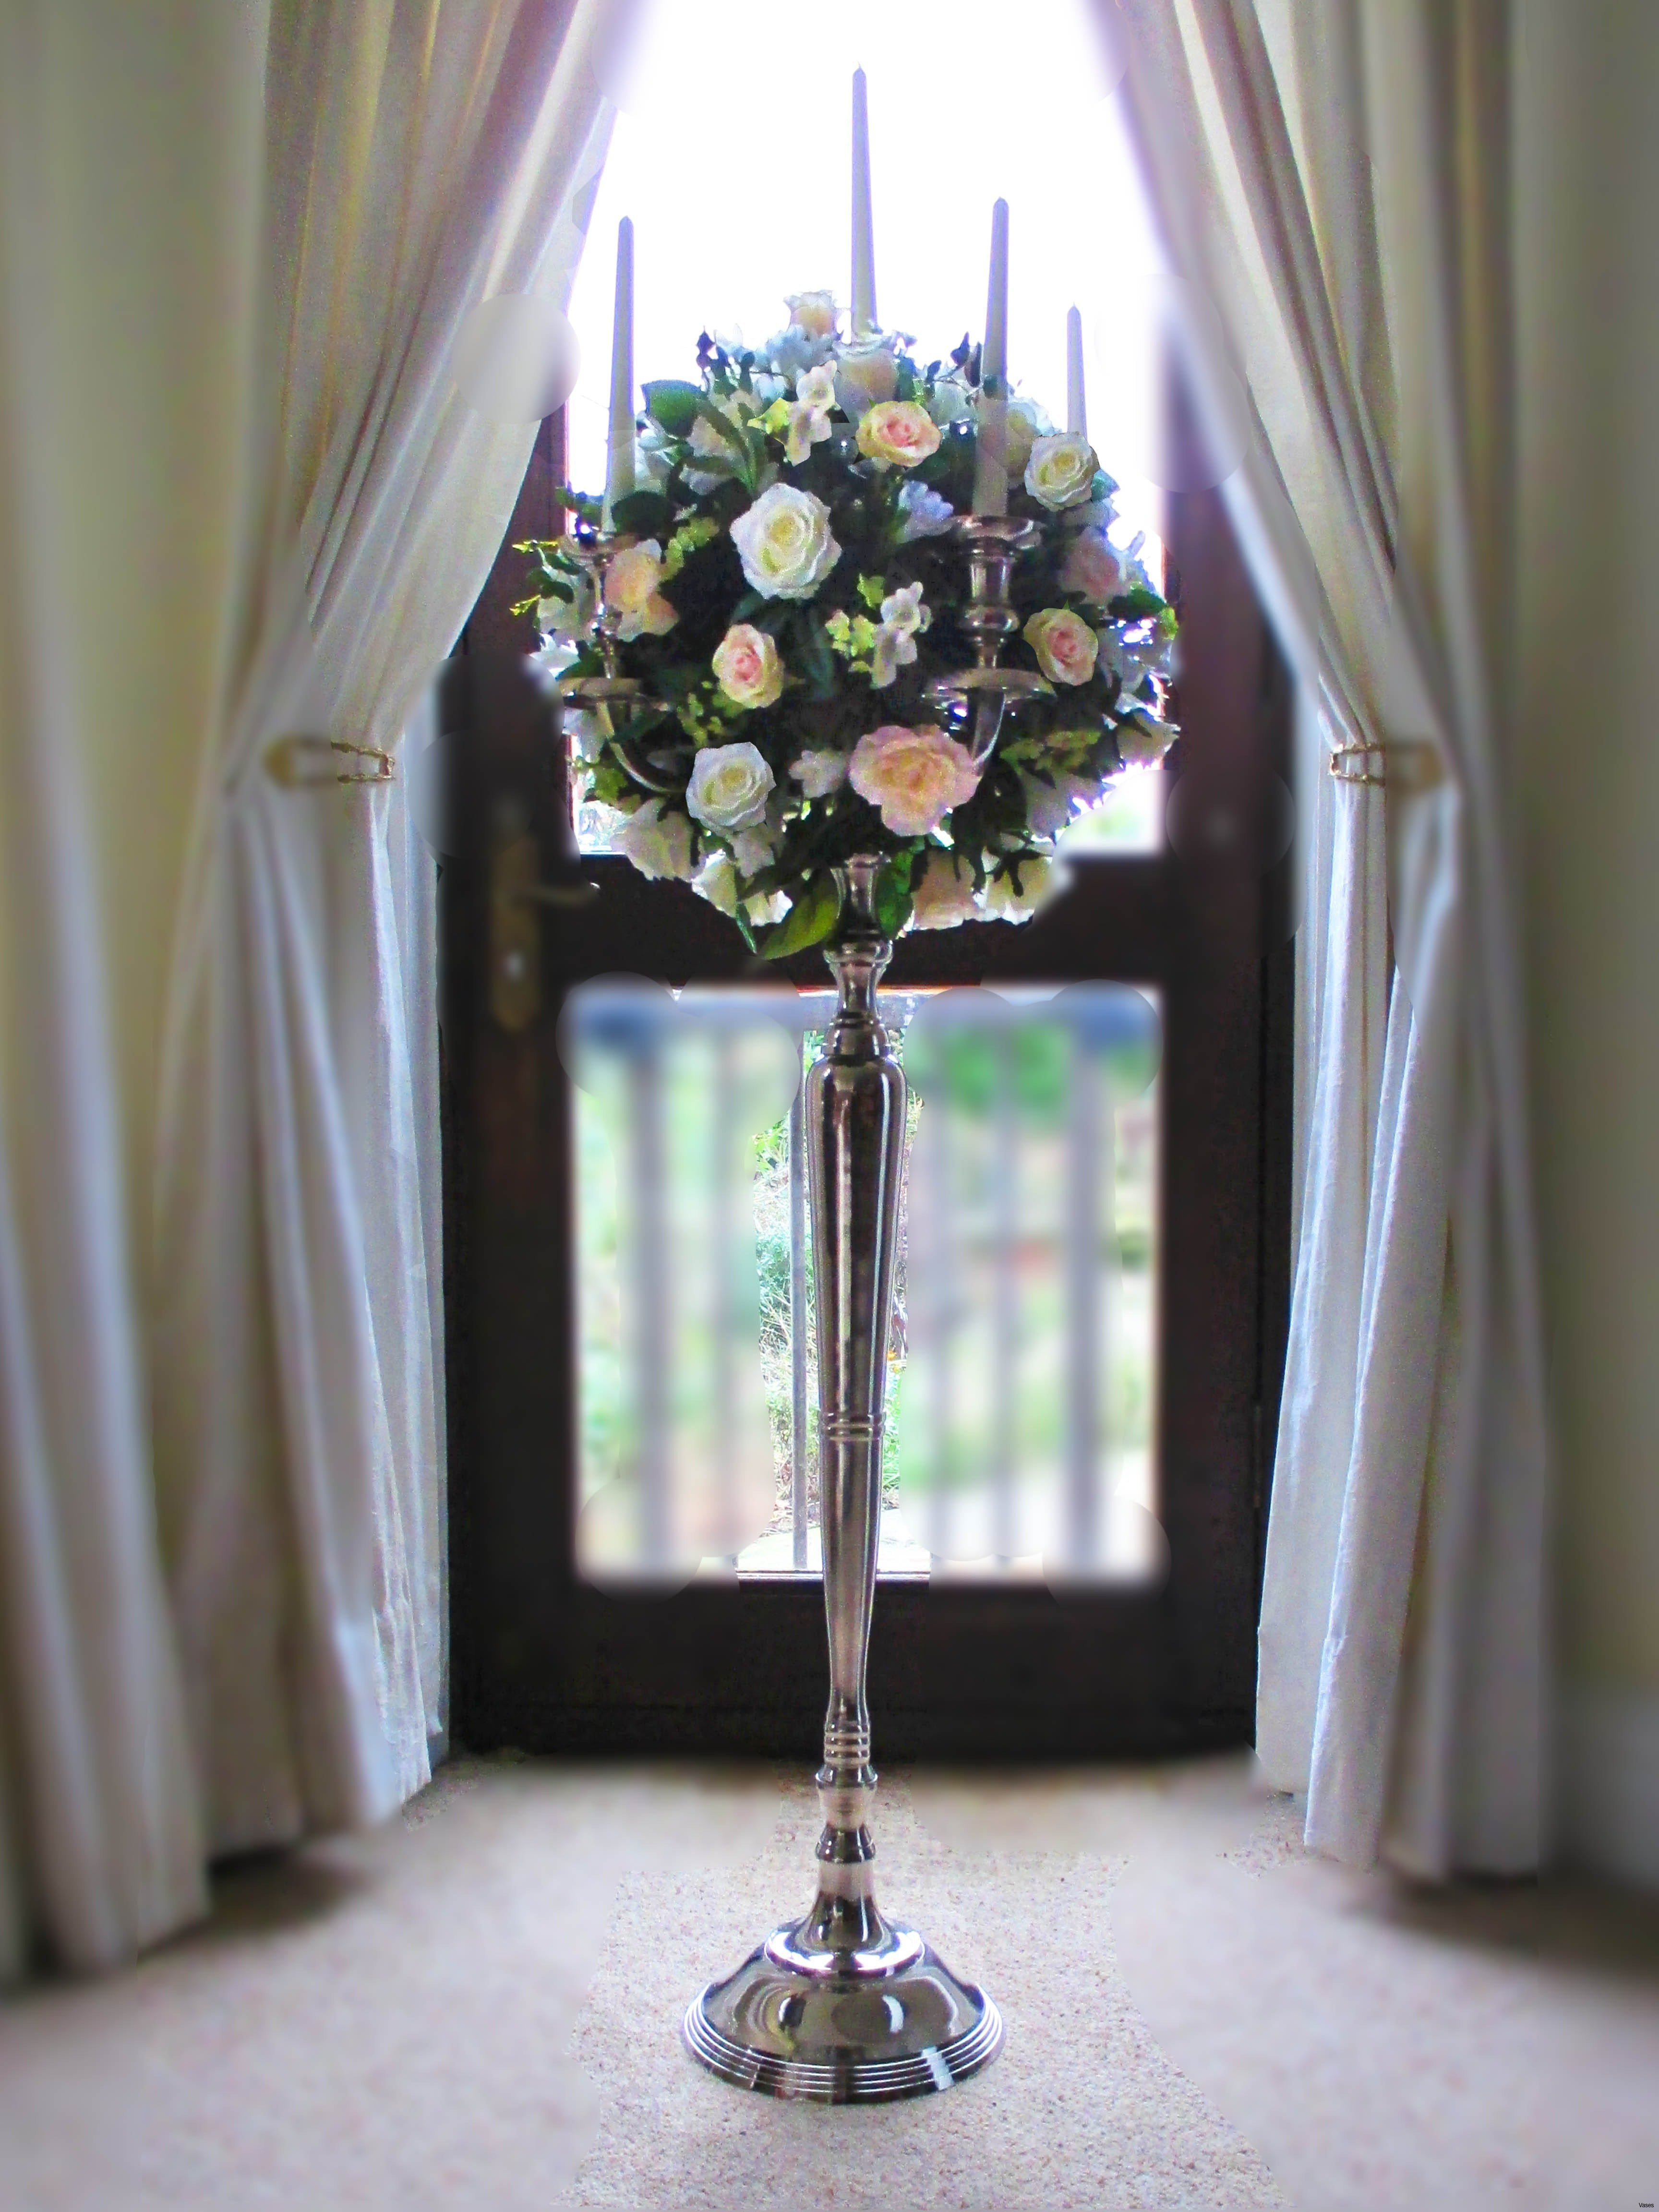 vase of roses images of cheap wedding decorations fresh cheap wedding bouquets packages throughout cheap wedding decorations fresh cheap wedding bouquets packages 5397h vases silver vase leeds i 0d